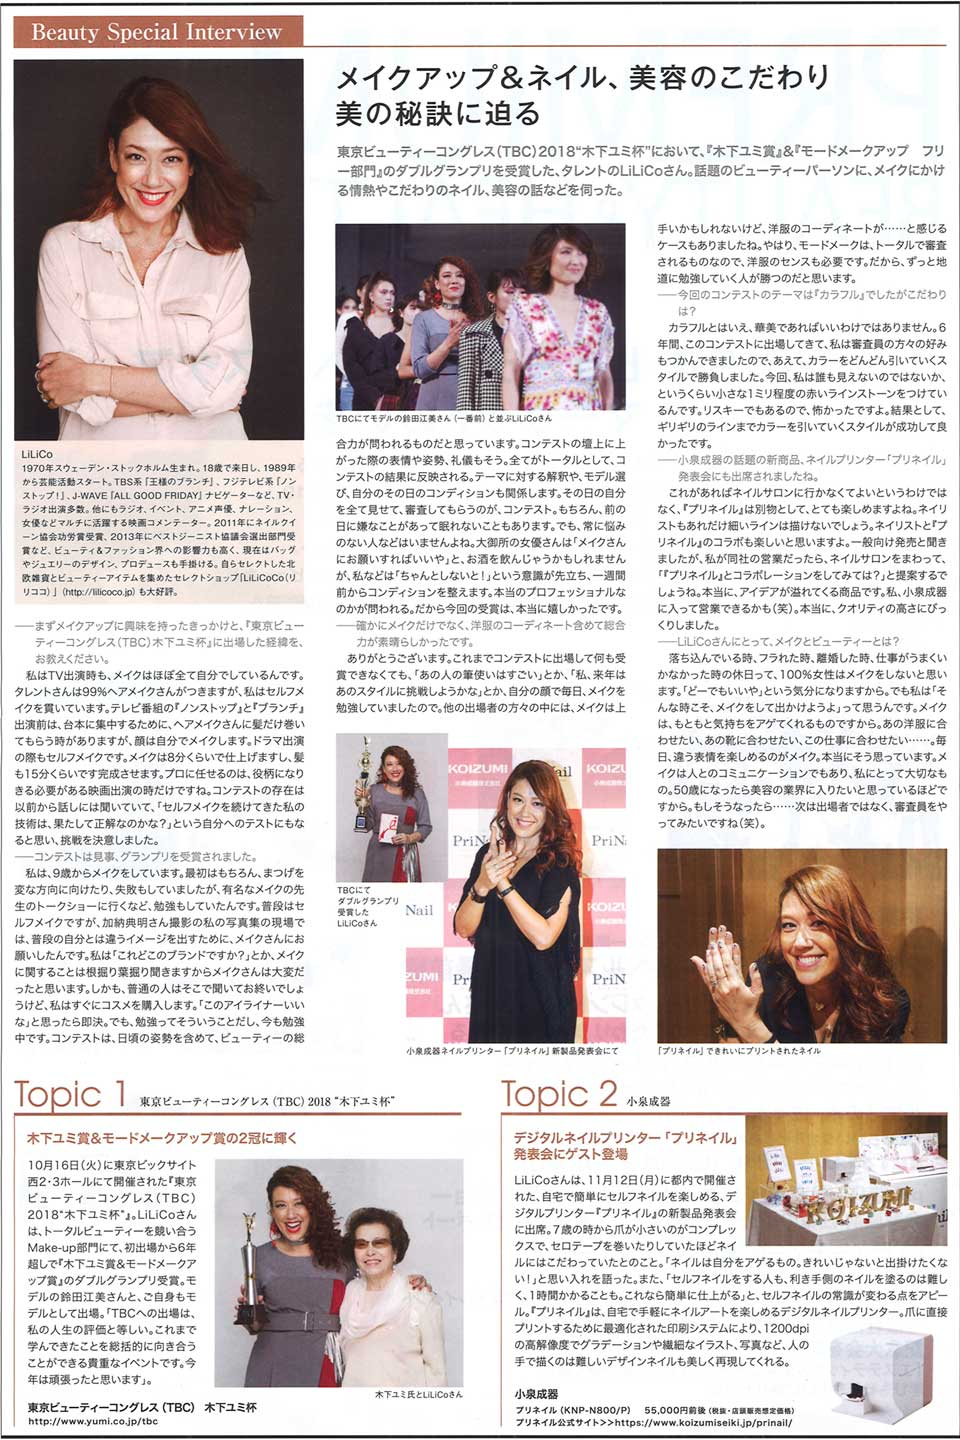 P.2 Beauty Special Interview